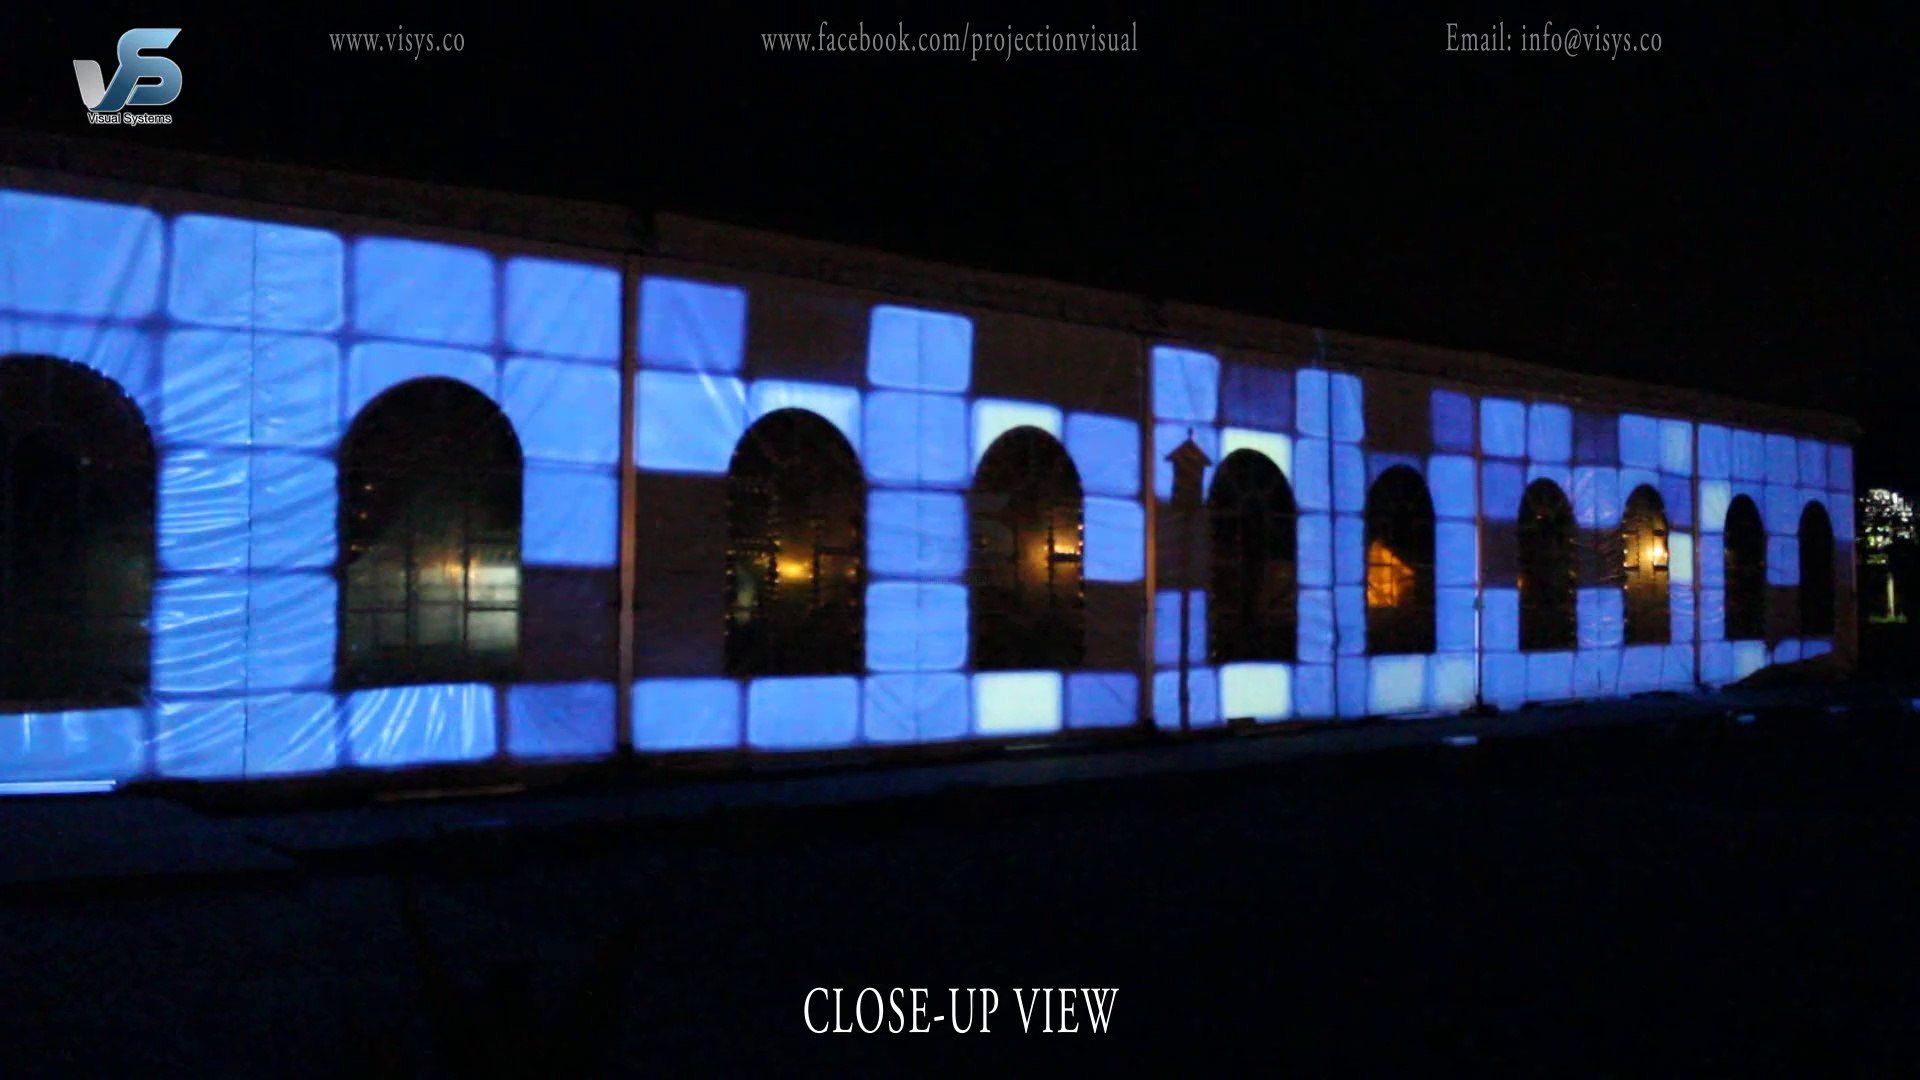 Creative Decor | Amazing Lights for Events | Latest Technology of 3D Projection Mapping Illuminating